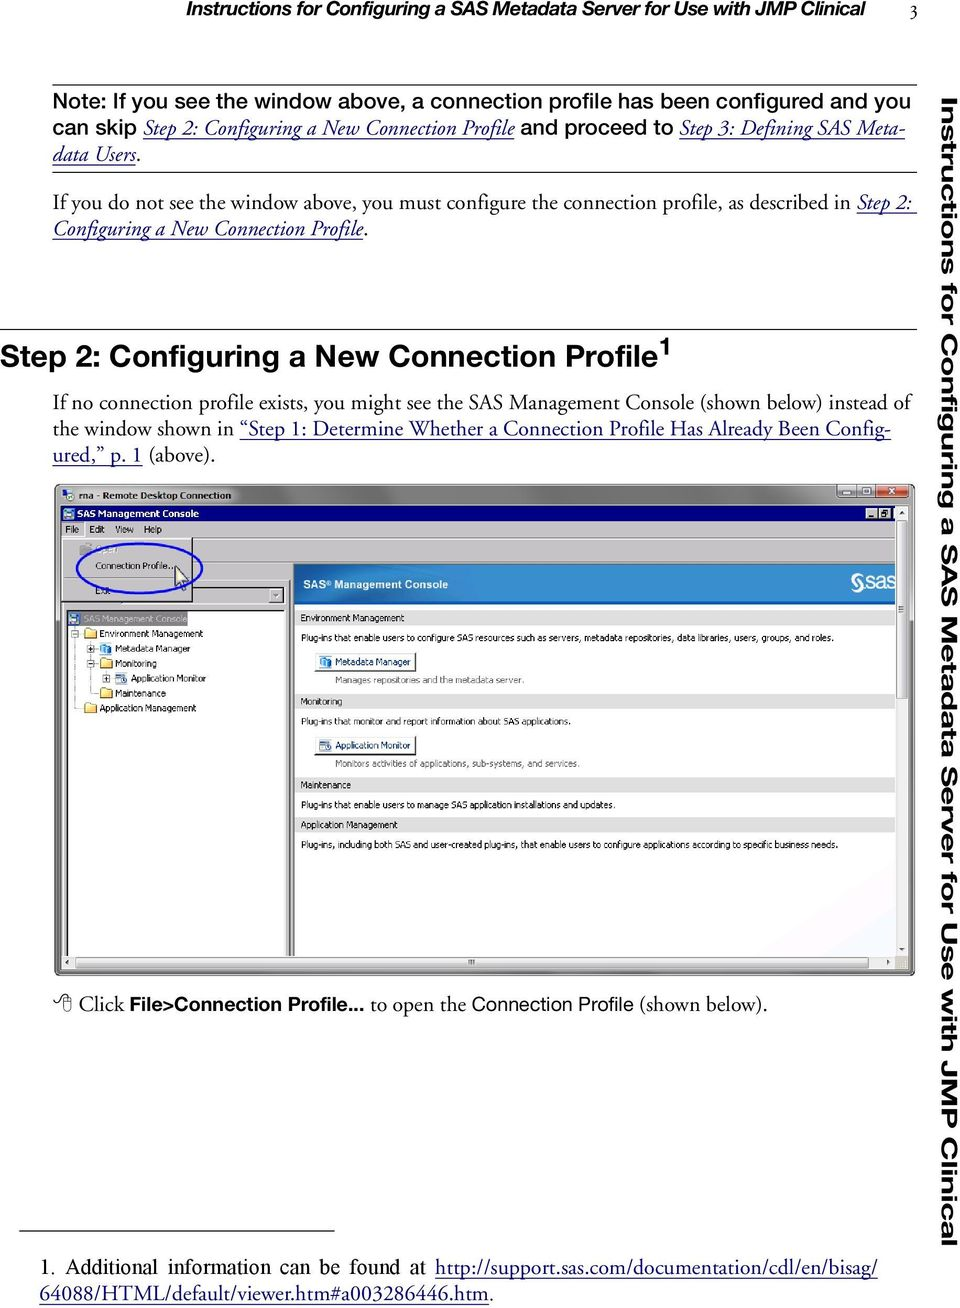 If you do not see the window above, you must configure the connection profile, as described in Step 2: Configuring a New Connection Profile.